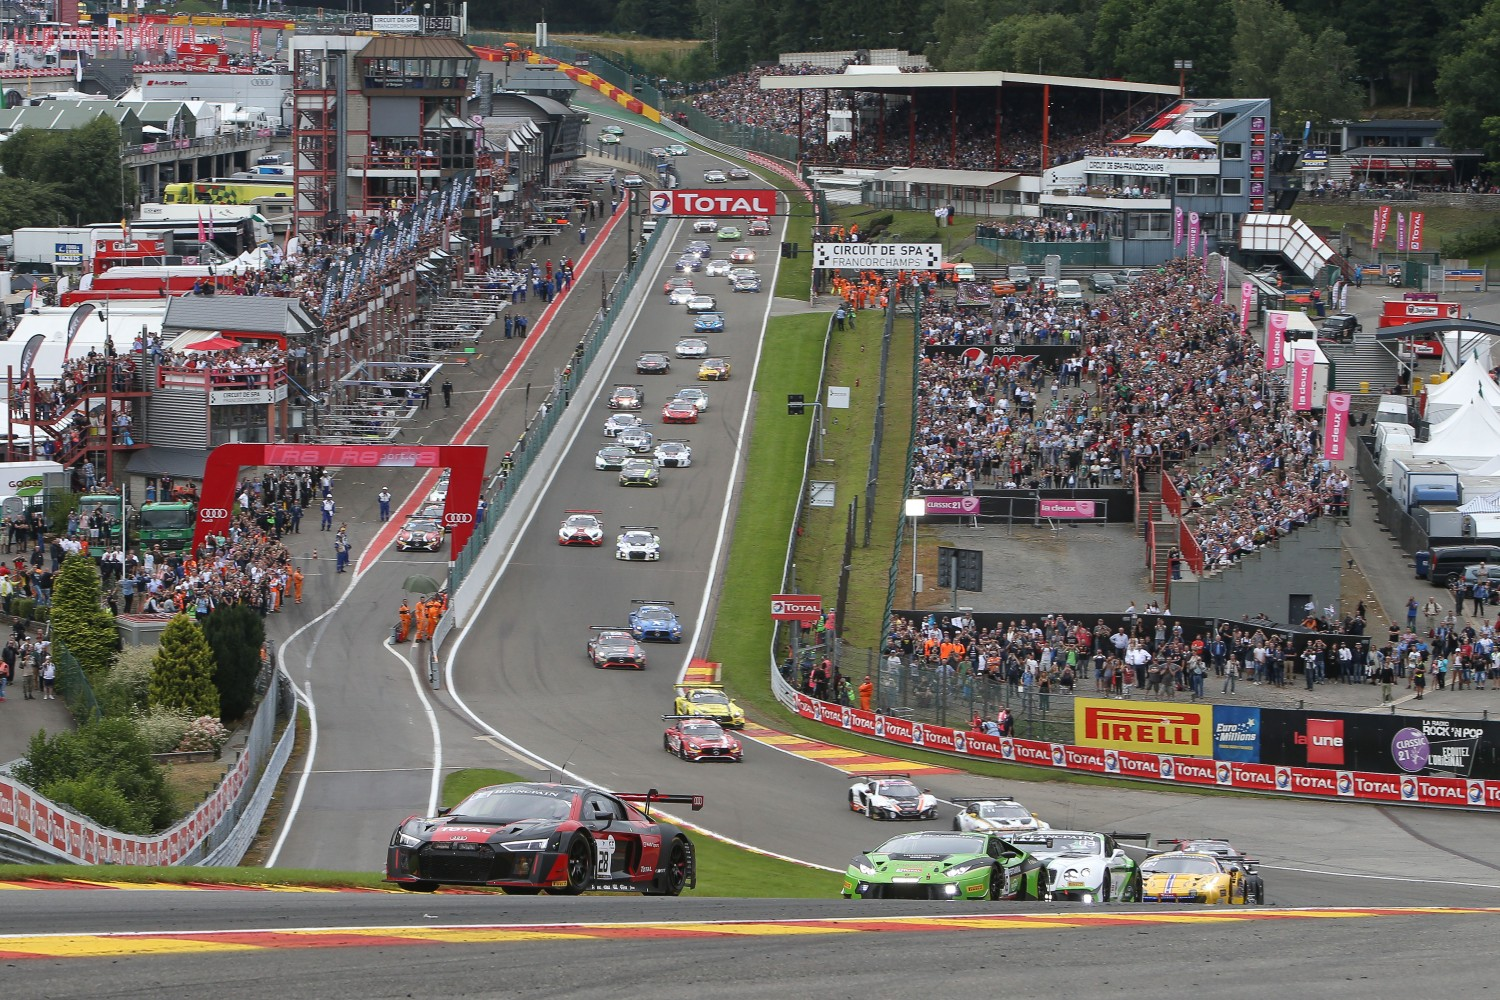 Hectic start to the 2016 Total 24 Hours of Spa